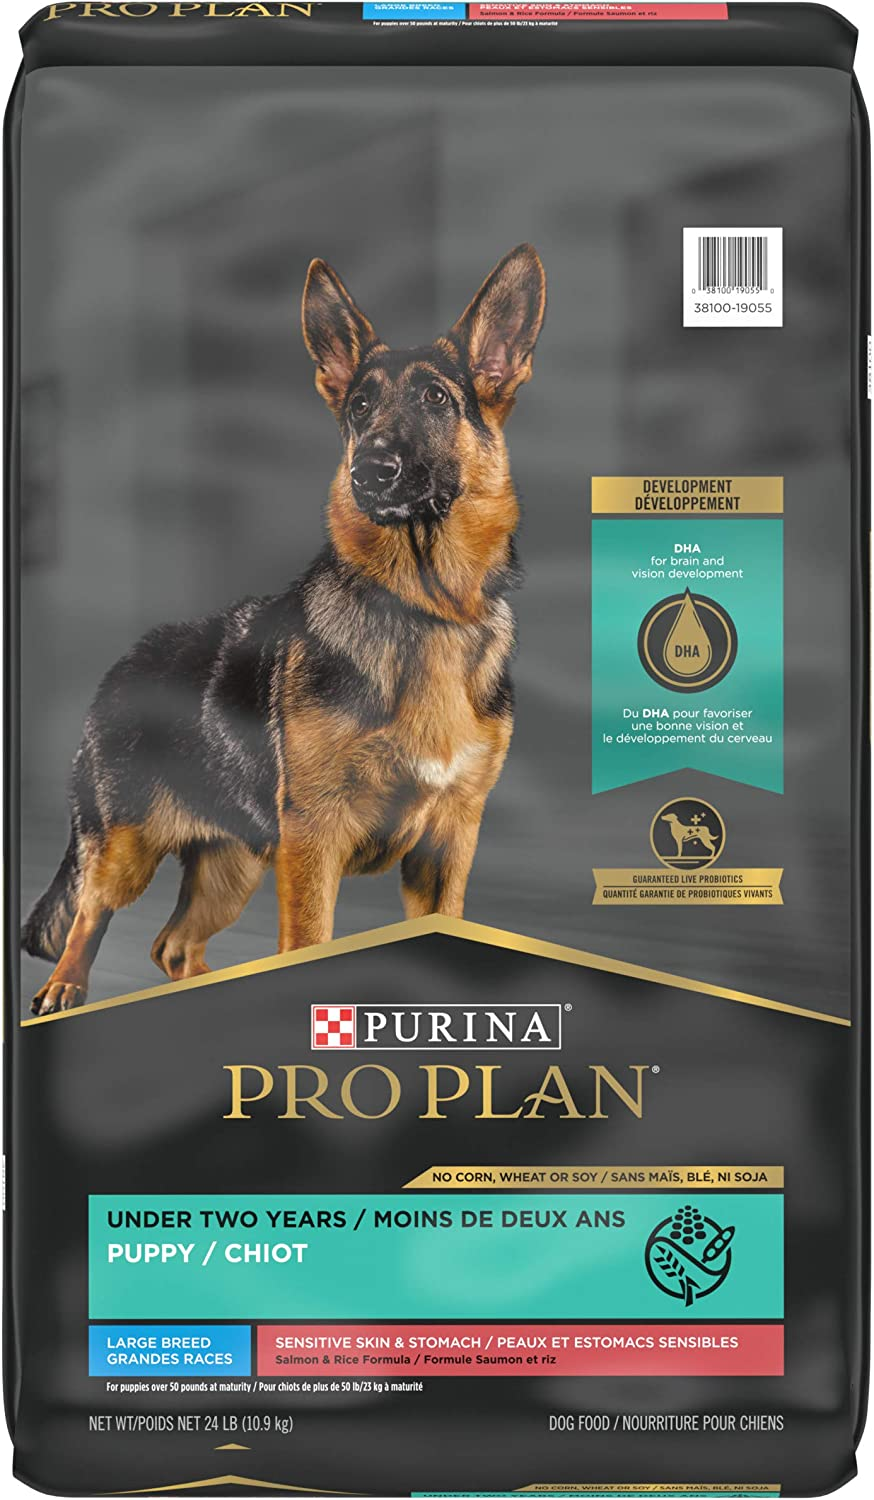 Purina Pro Plan Sensitive Skin and Stomach Large Breed Puppy Food with Probiotics, Salmon & Rice Formula - 24 lb. Bag